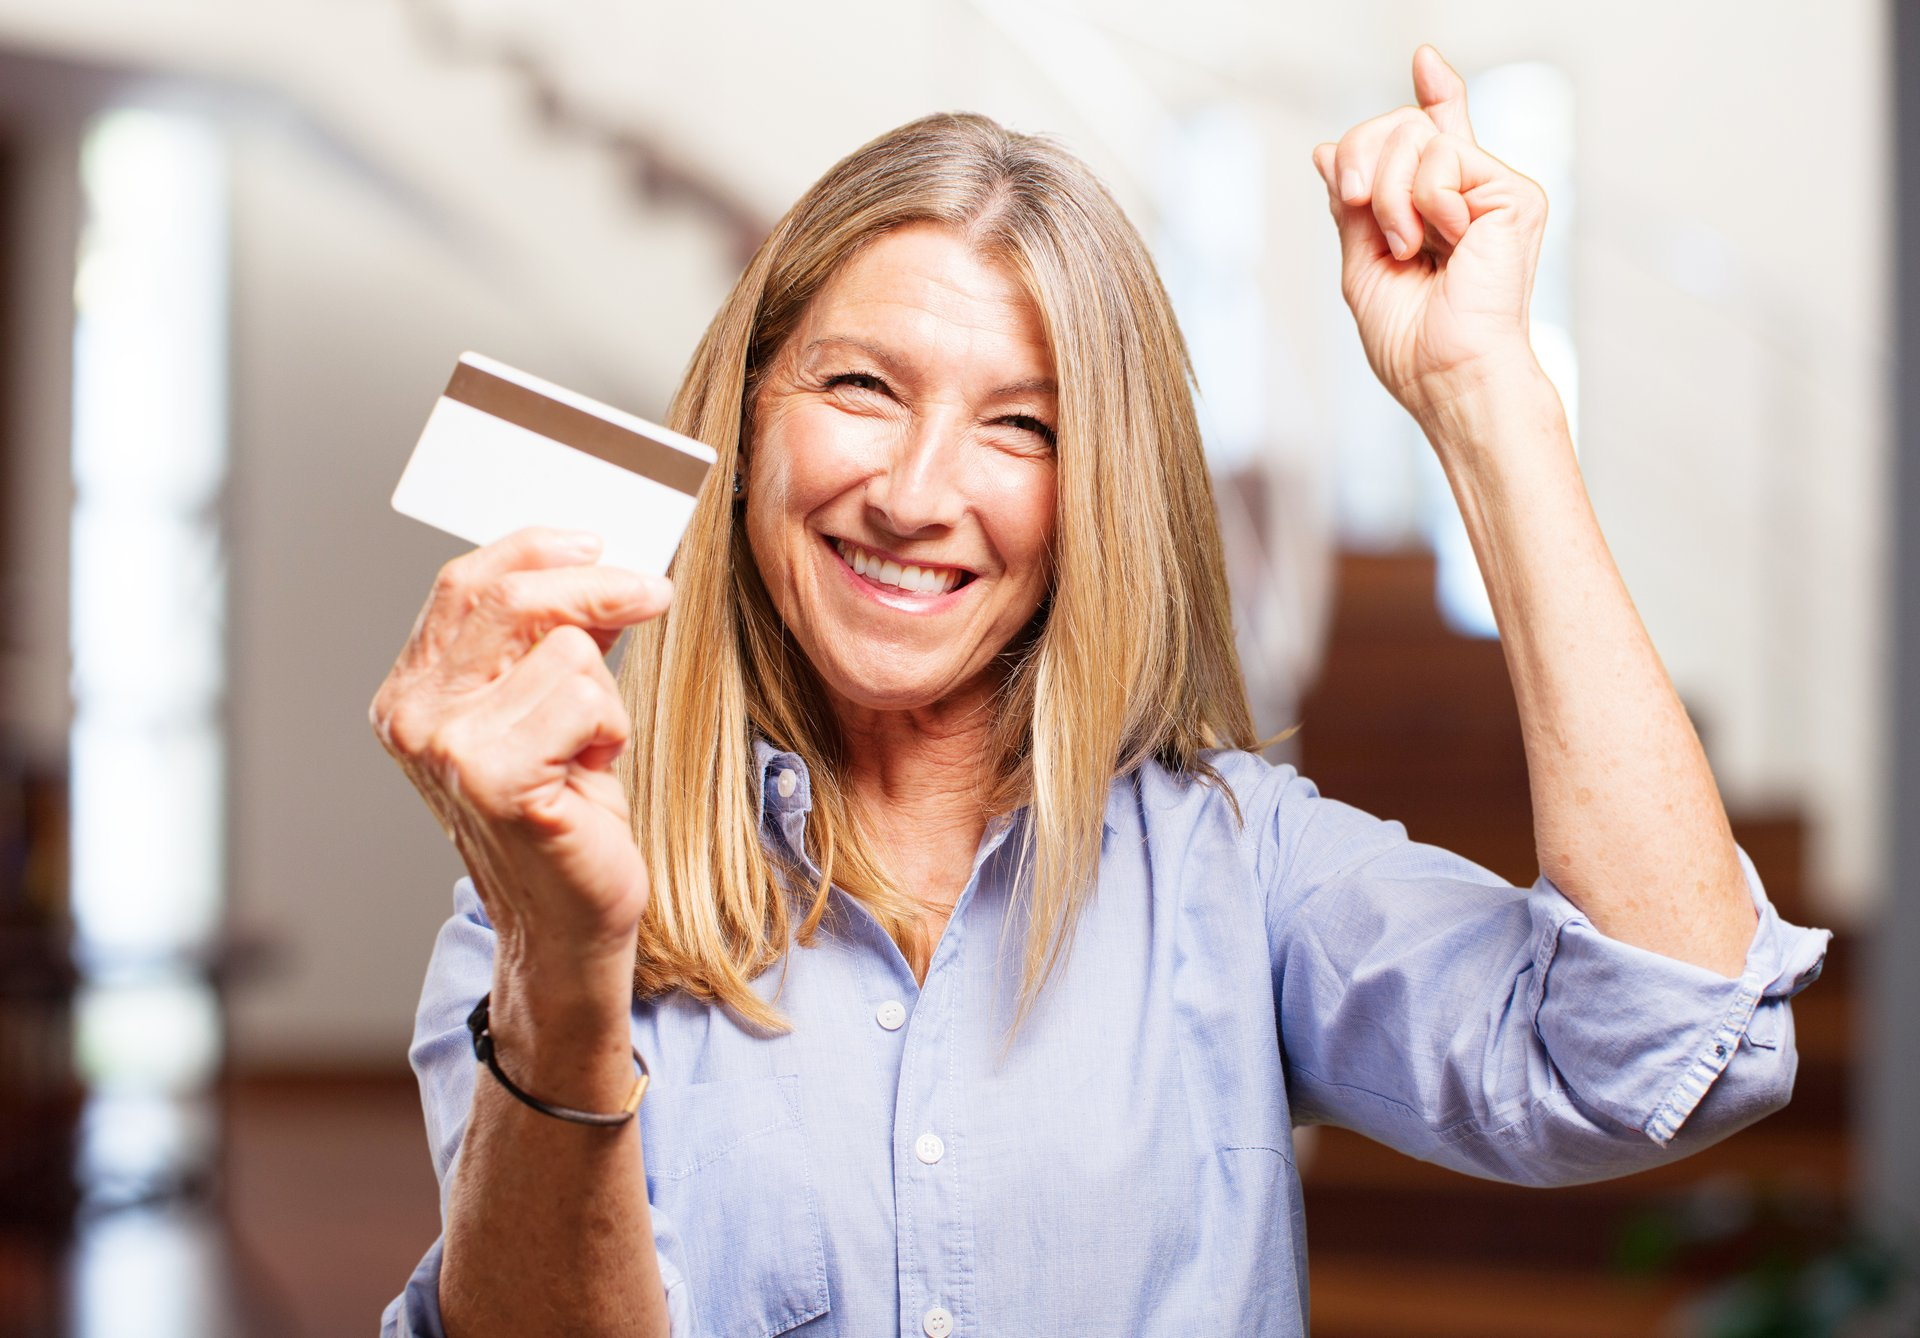 Happy woman with card